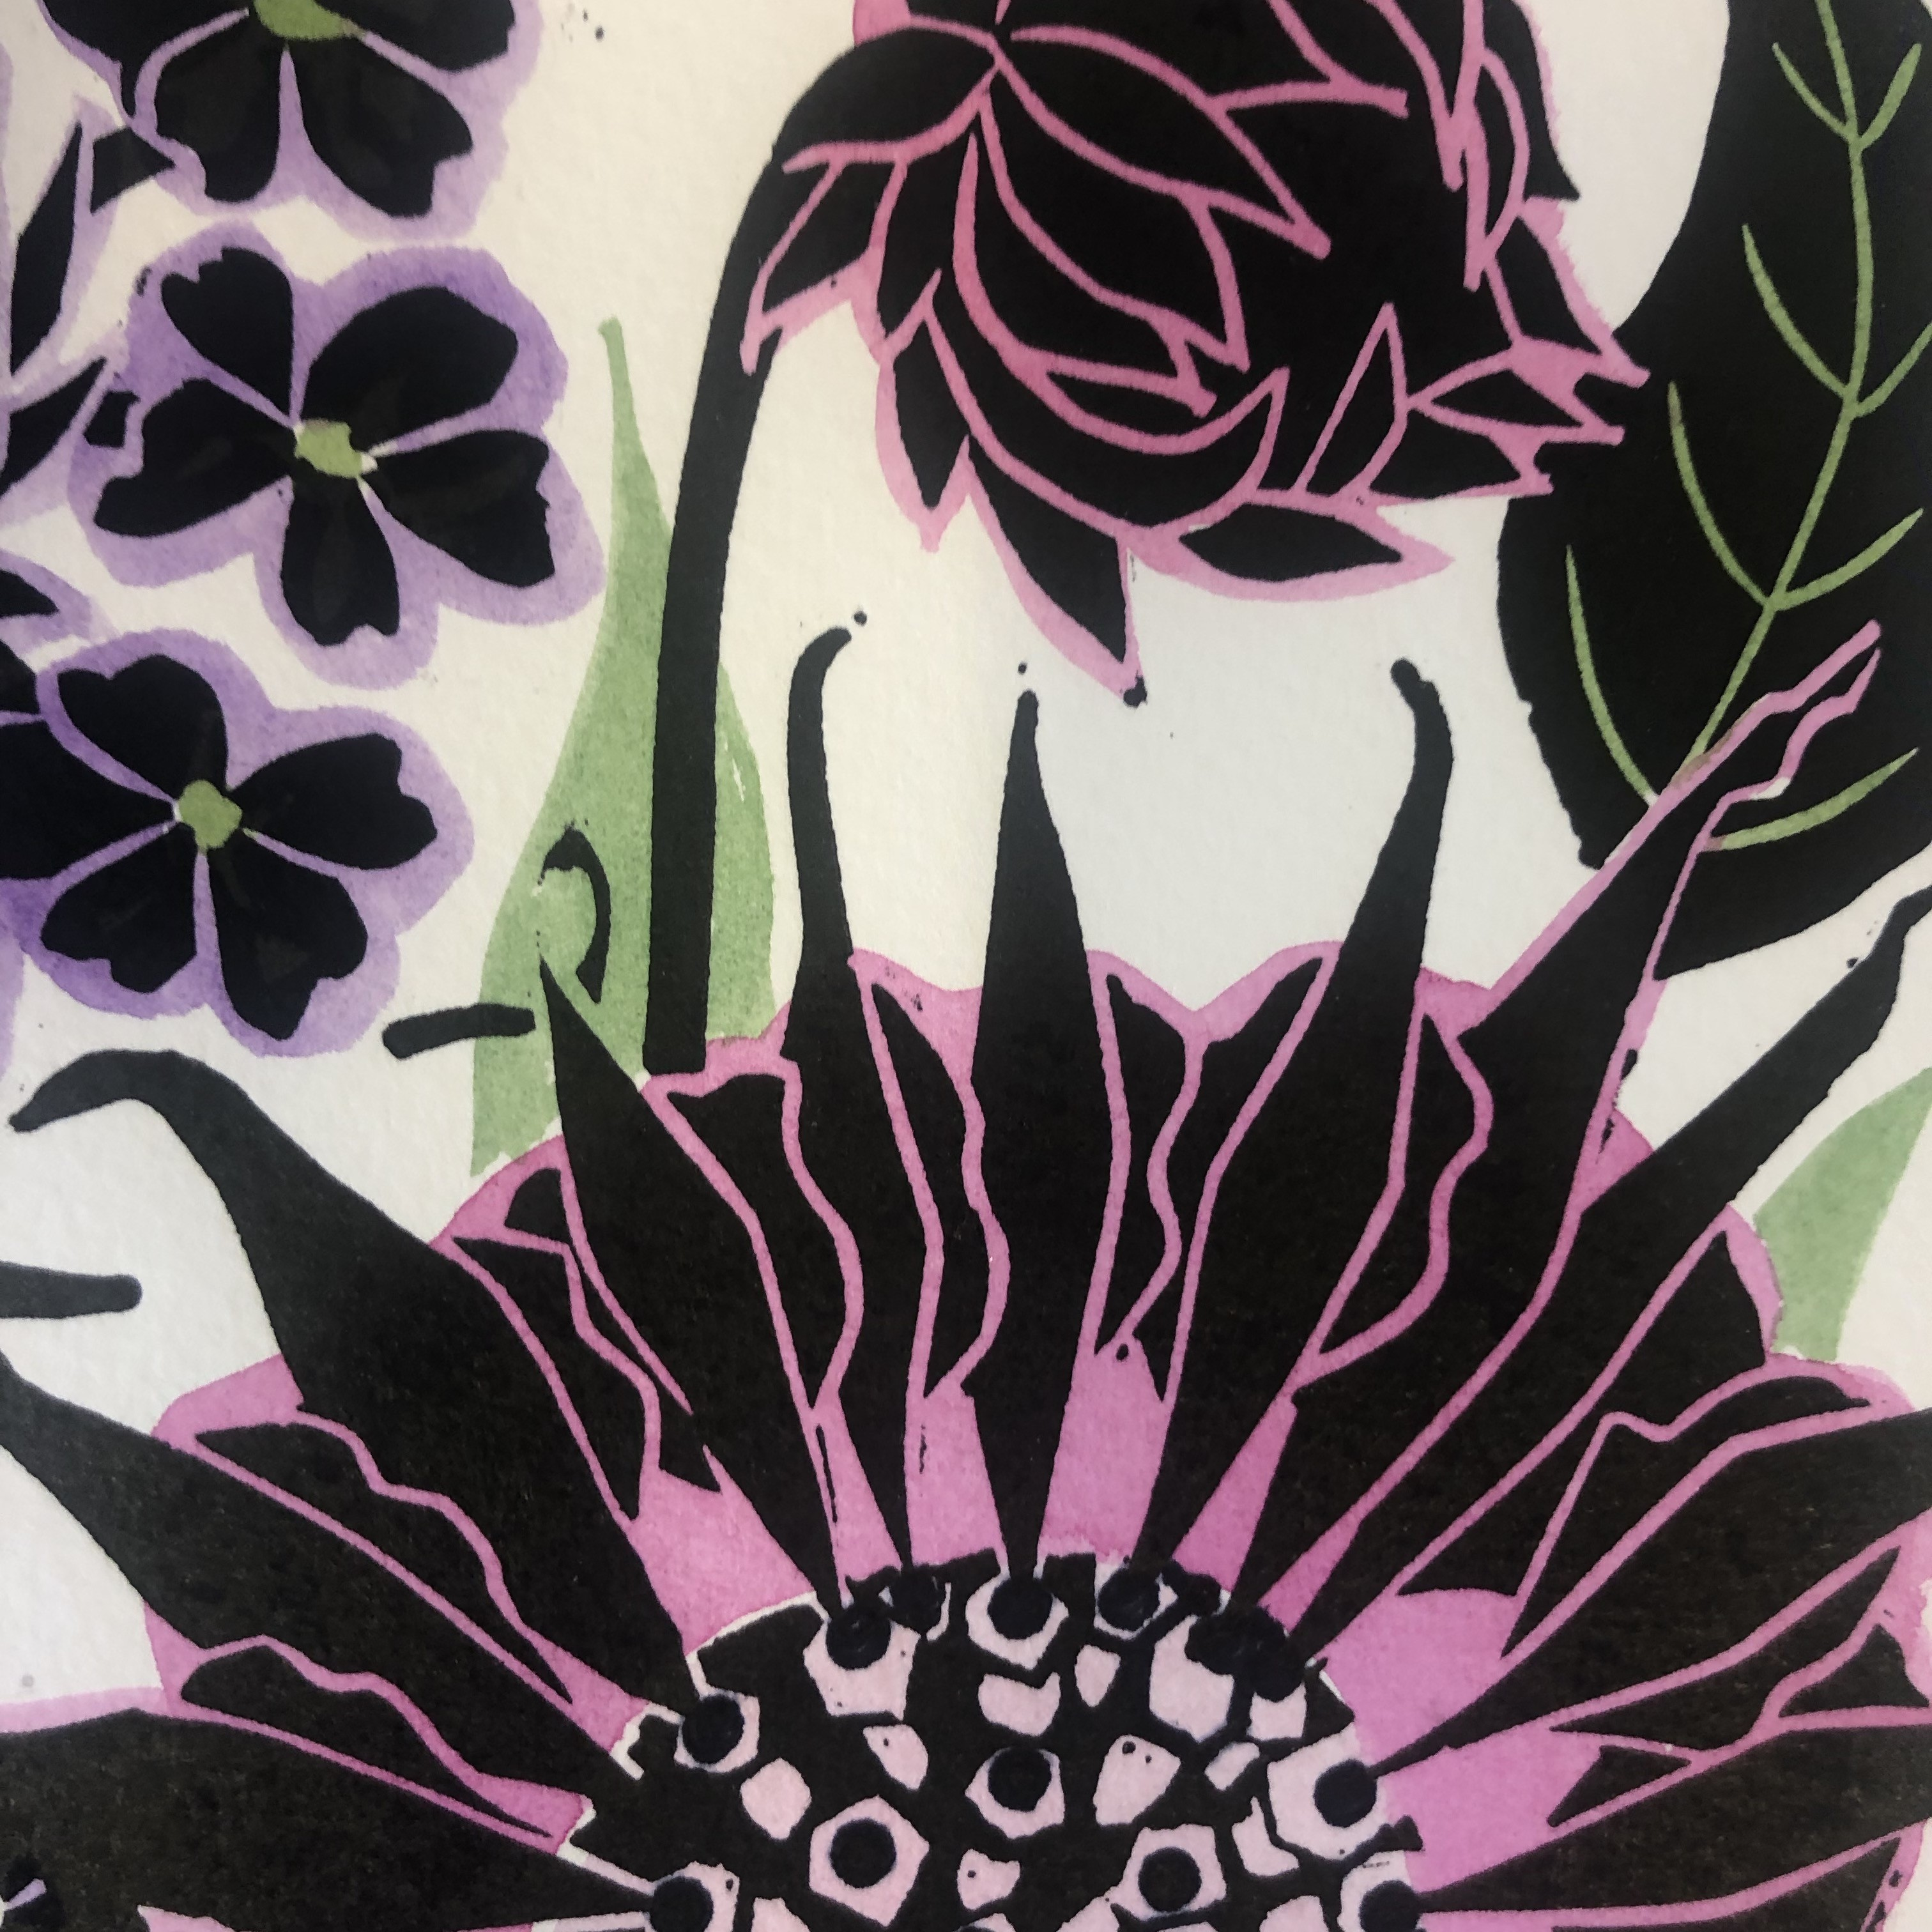 A medley of Cottage Garden flowers including Verbena bonariensis, Convolvulus and Monarda also known as bee balm. This linocut has been hand coloured using lightfast indian inks.